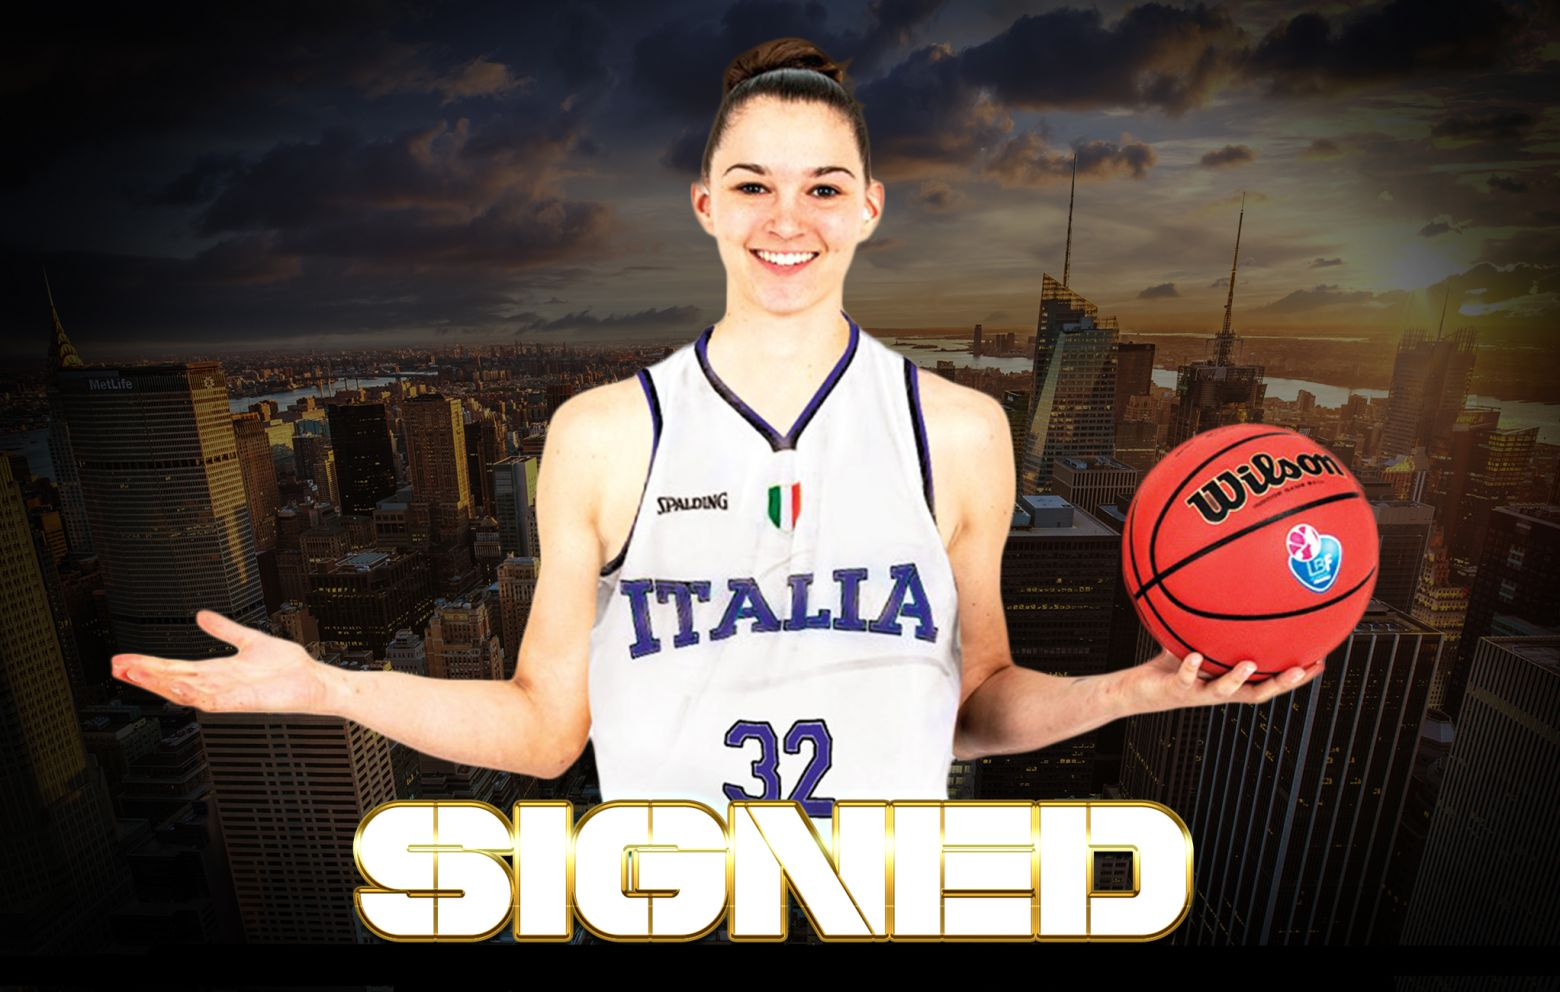 SAMANTHA OSTARELLO has signed with Regeneracom Sports